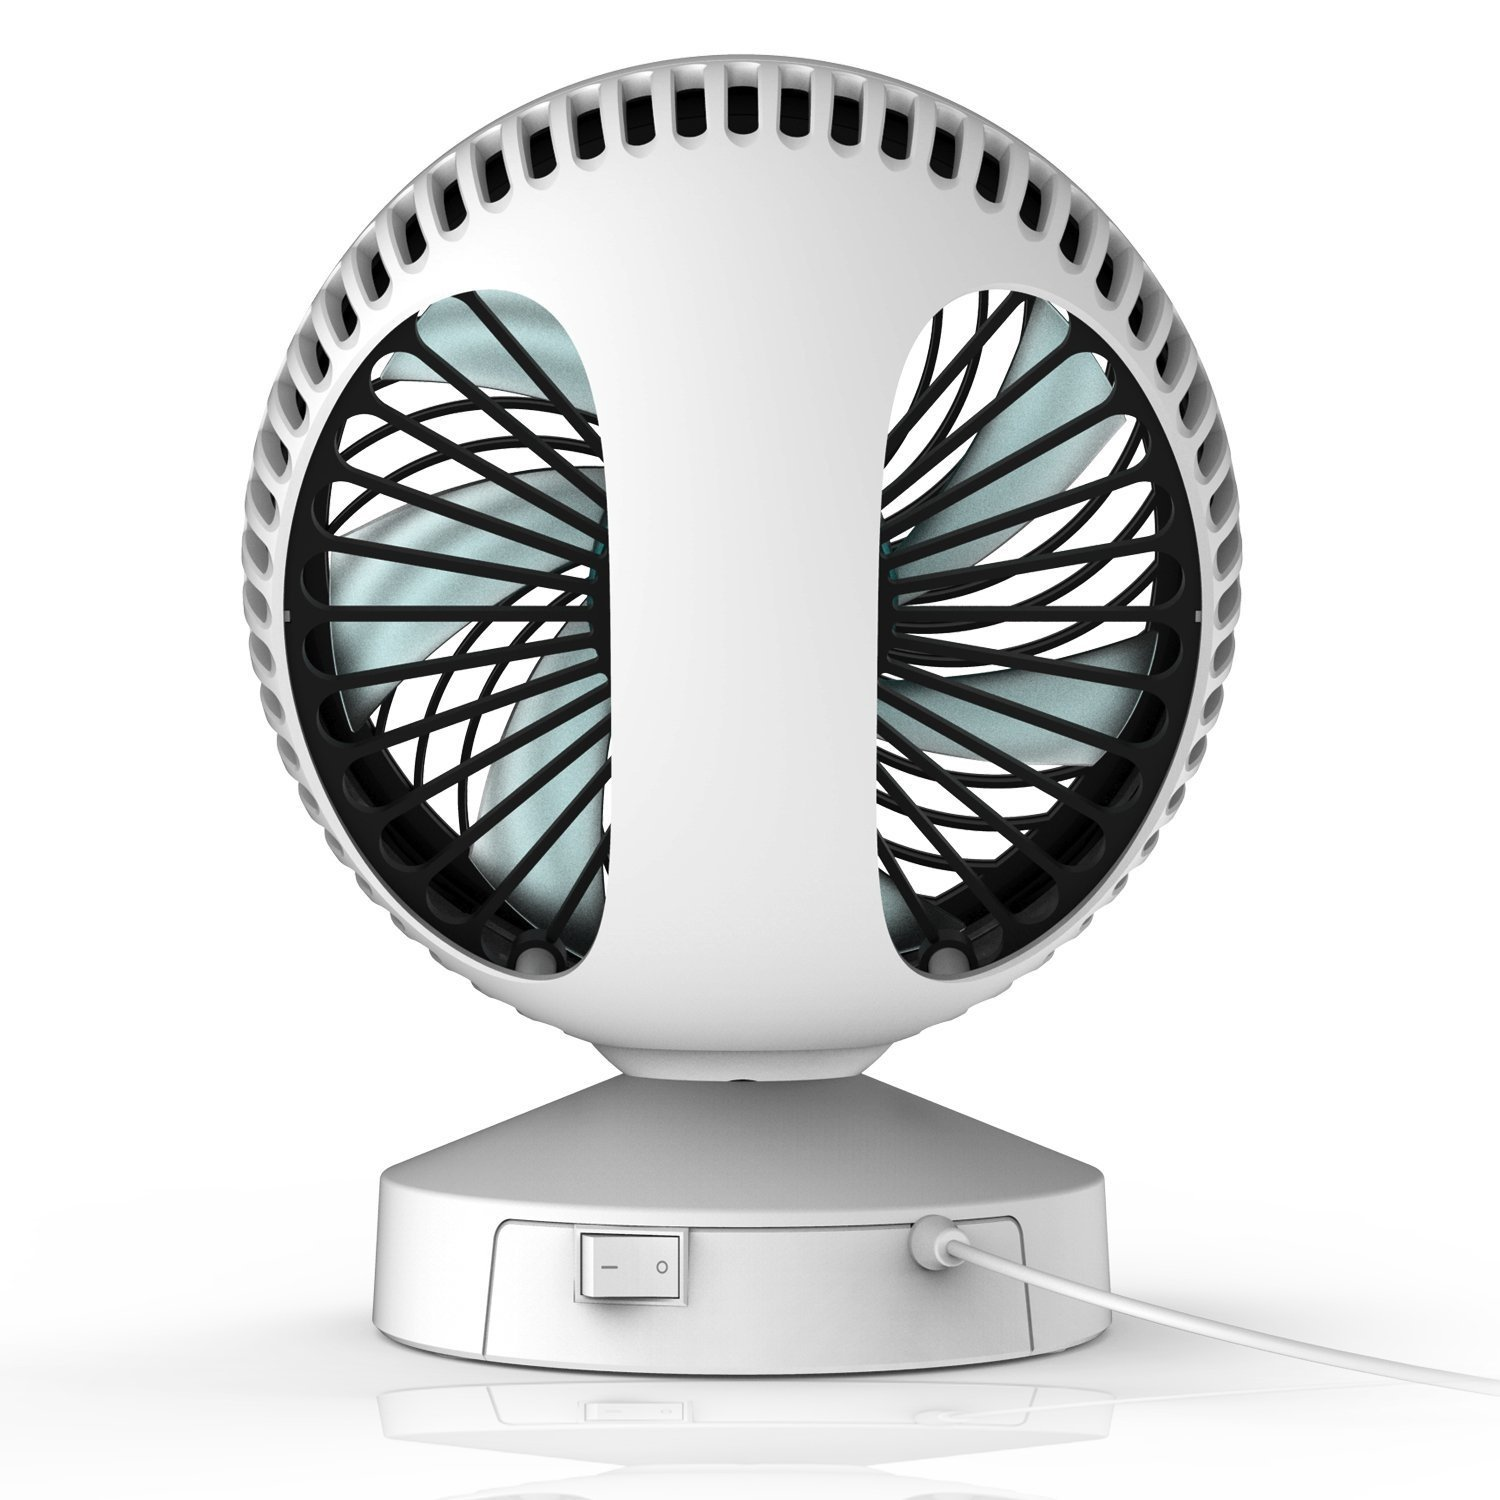 new product b9ee0 5933c ... Technologie Air Multiplier Garantie 2 ans Blanc Argent, KLIM Breeze -  Ventilateur de Bureau USB Haute Performance - Ventilo de Table - Silencieux  et ...